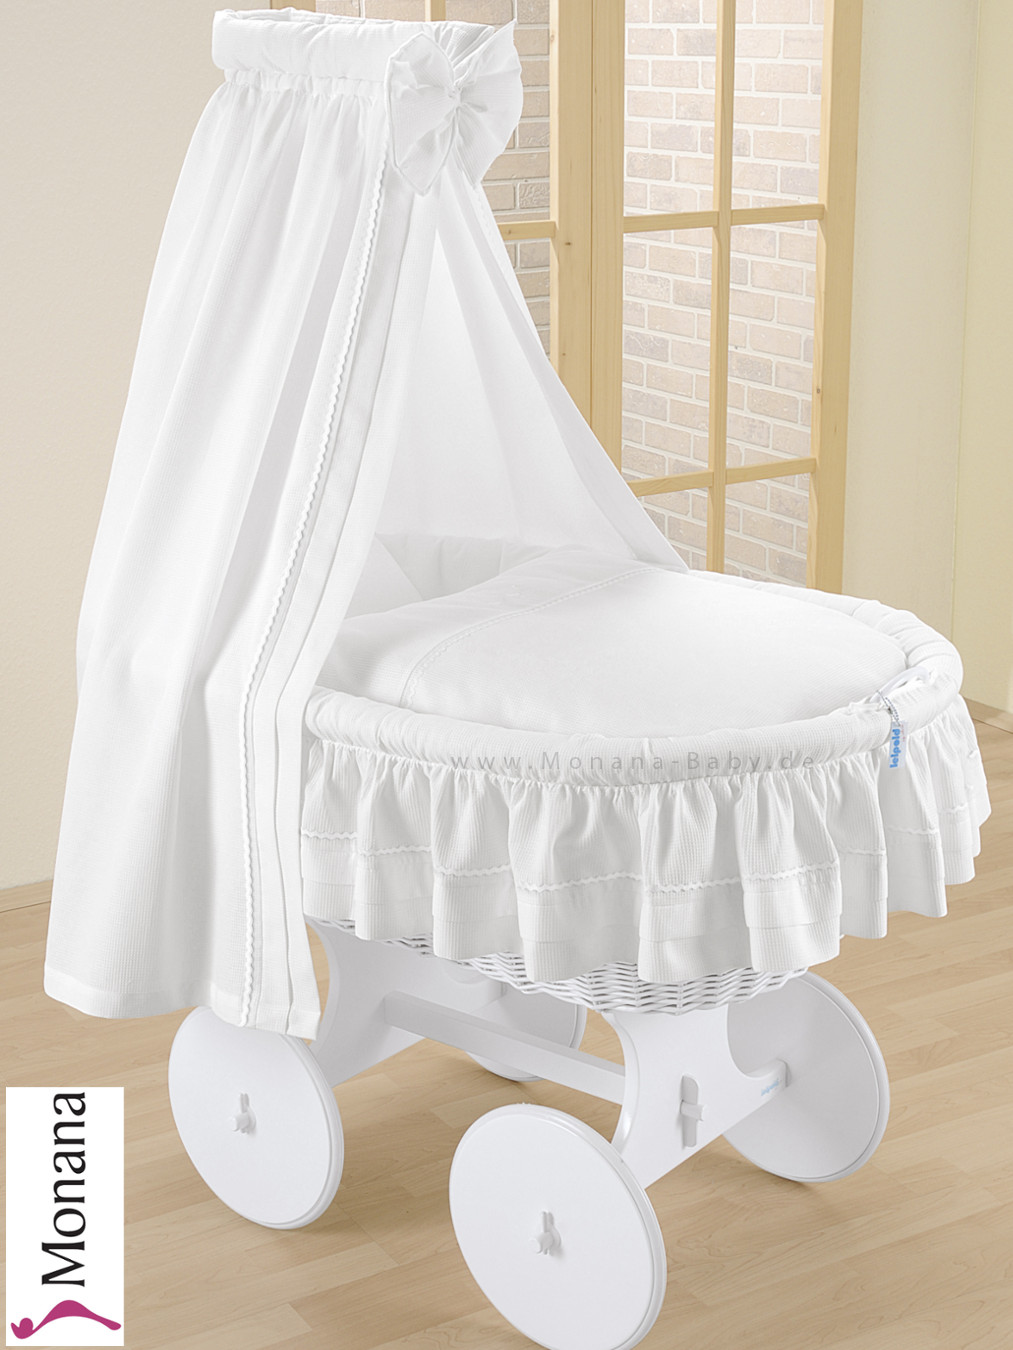 Leipold crib for sale - 00 946 Wlow Leipold Bollerwagen Himmel Lollipop Weiss 2016 Leipold Wicker Drape Crib With Veil And